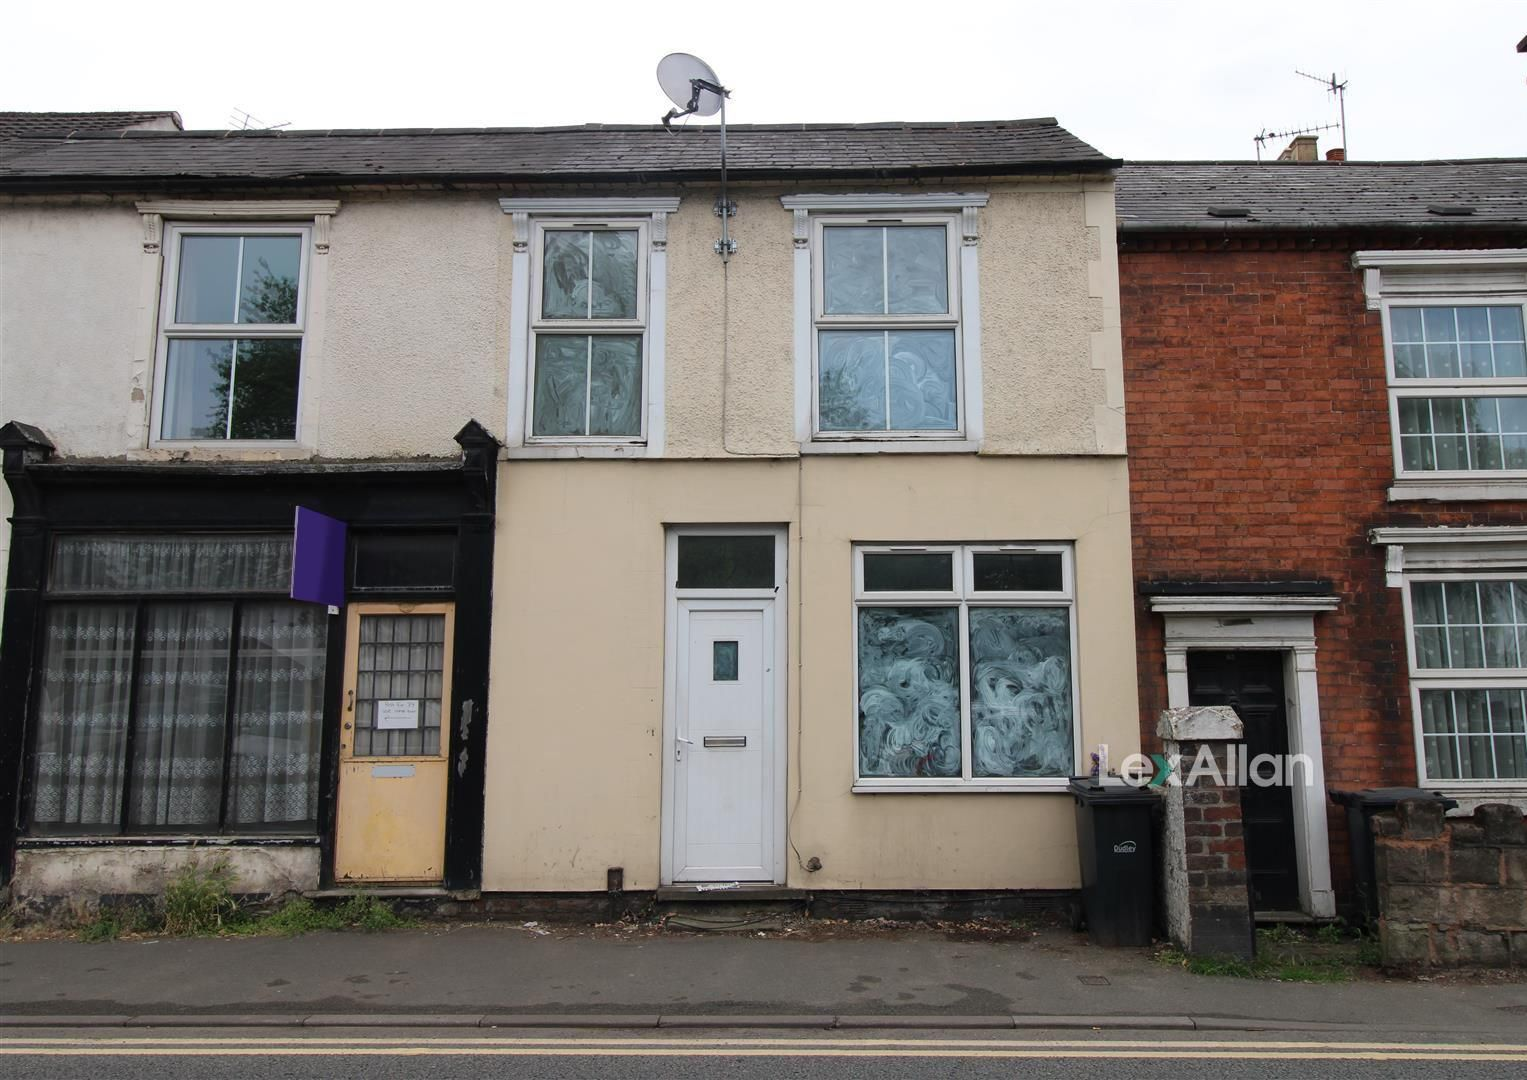 2 bed house for sale, DY8